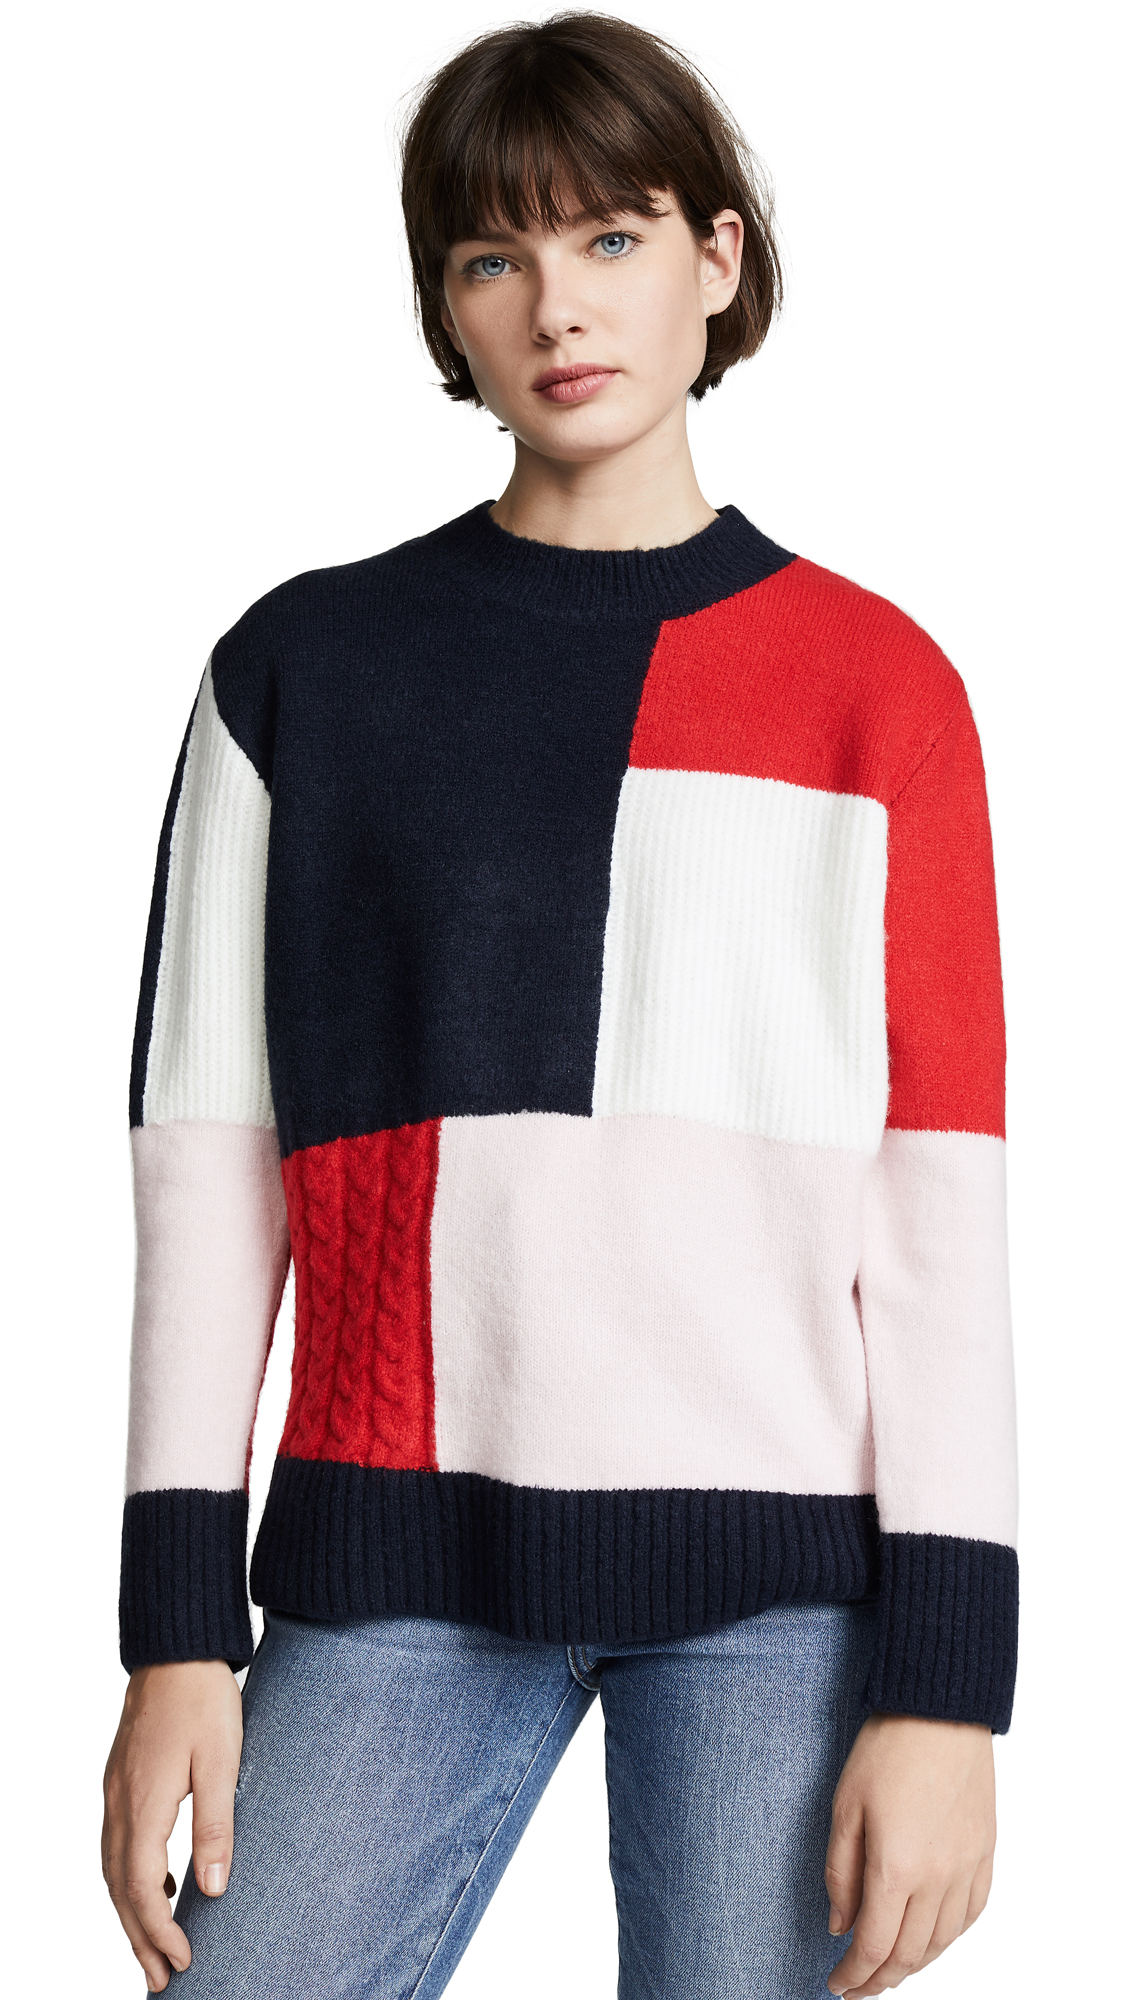 Patchwork Knit Sweater in Carbon Blue